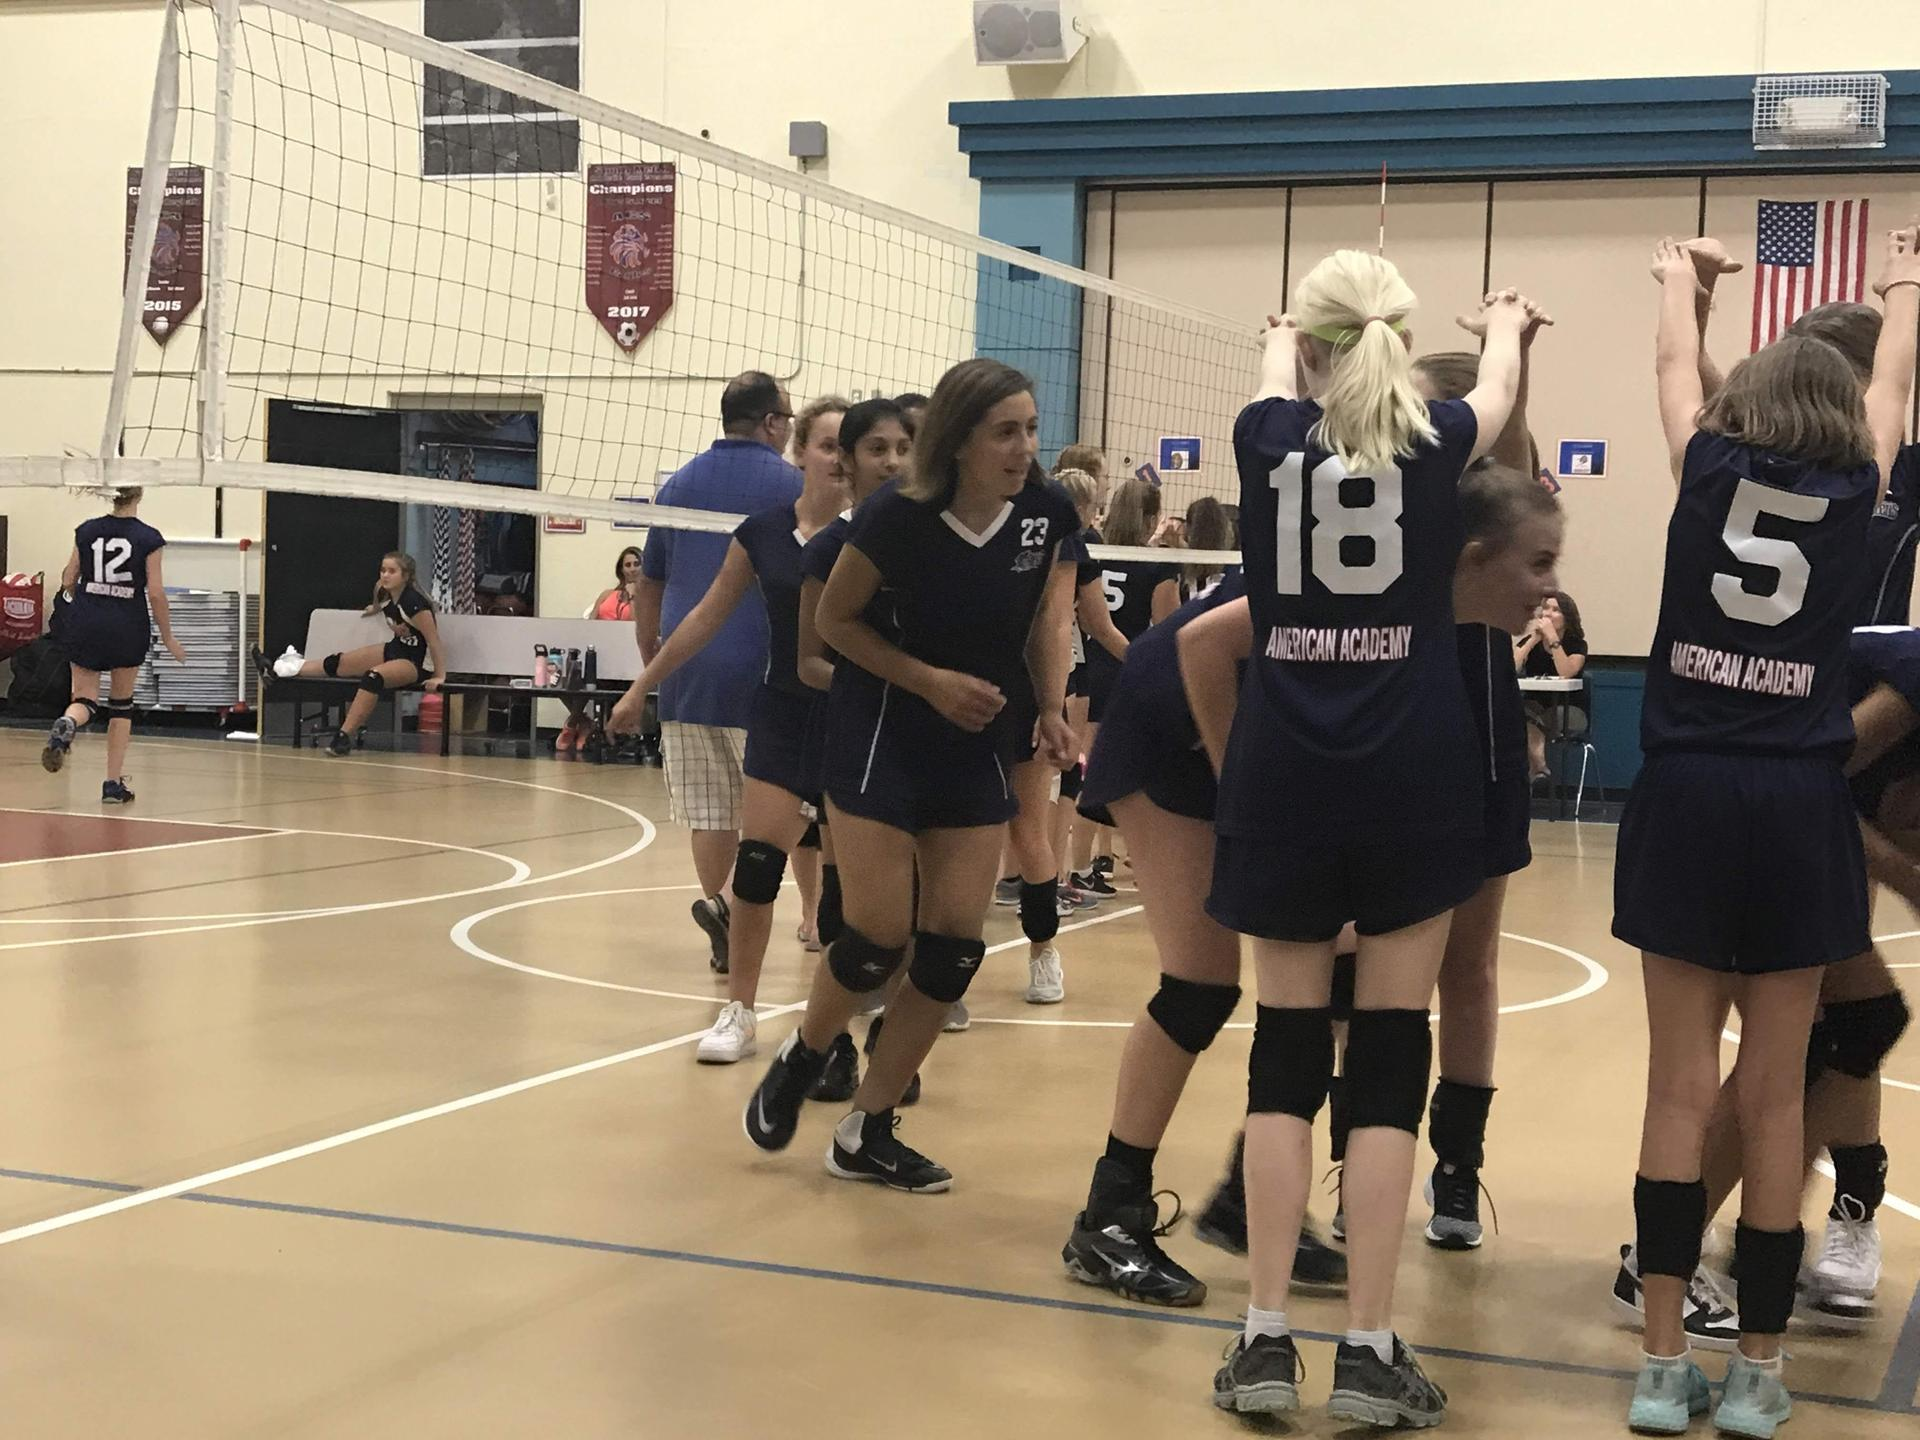 Girls volleyball playing on the court.